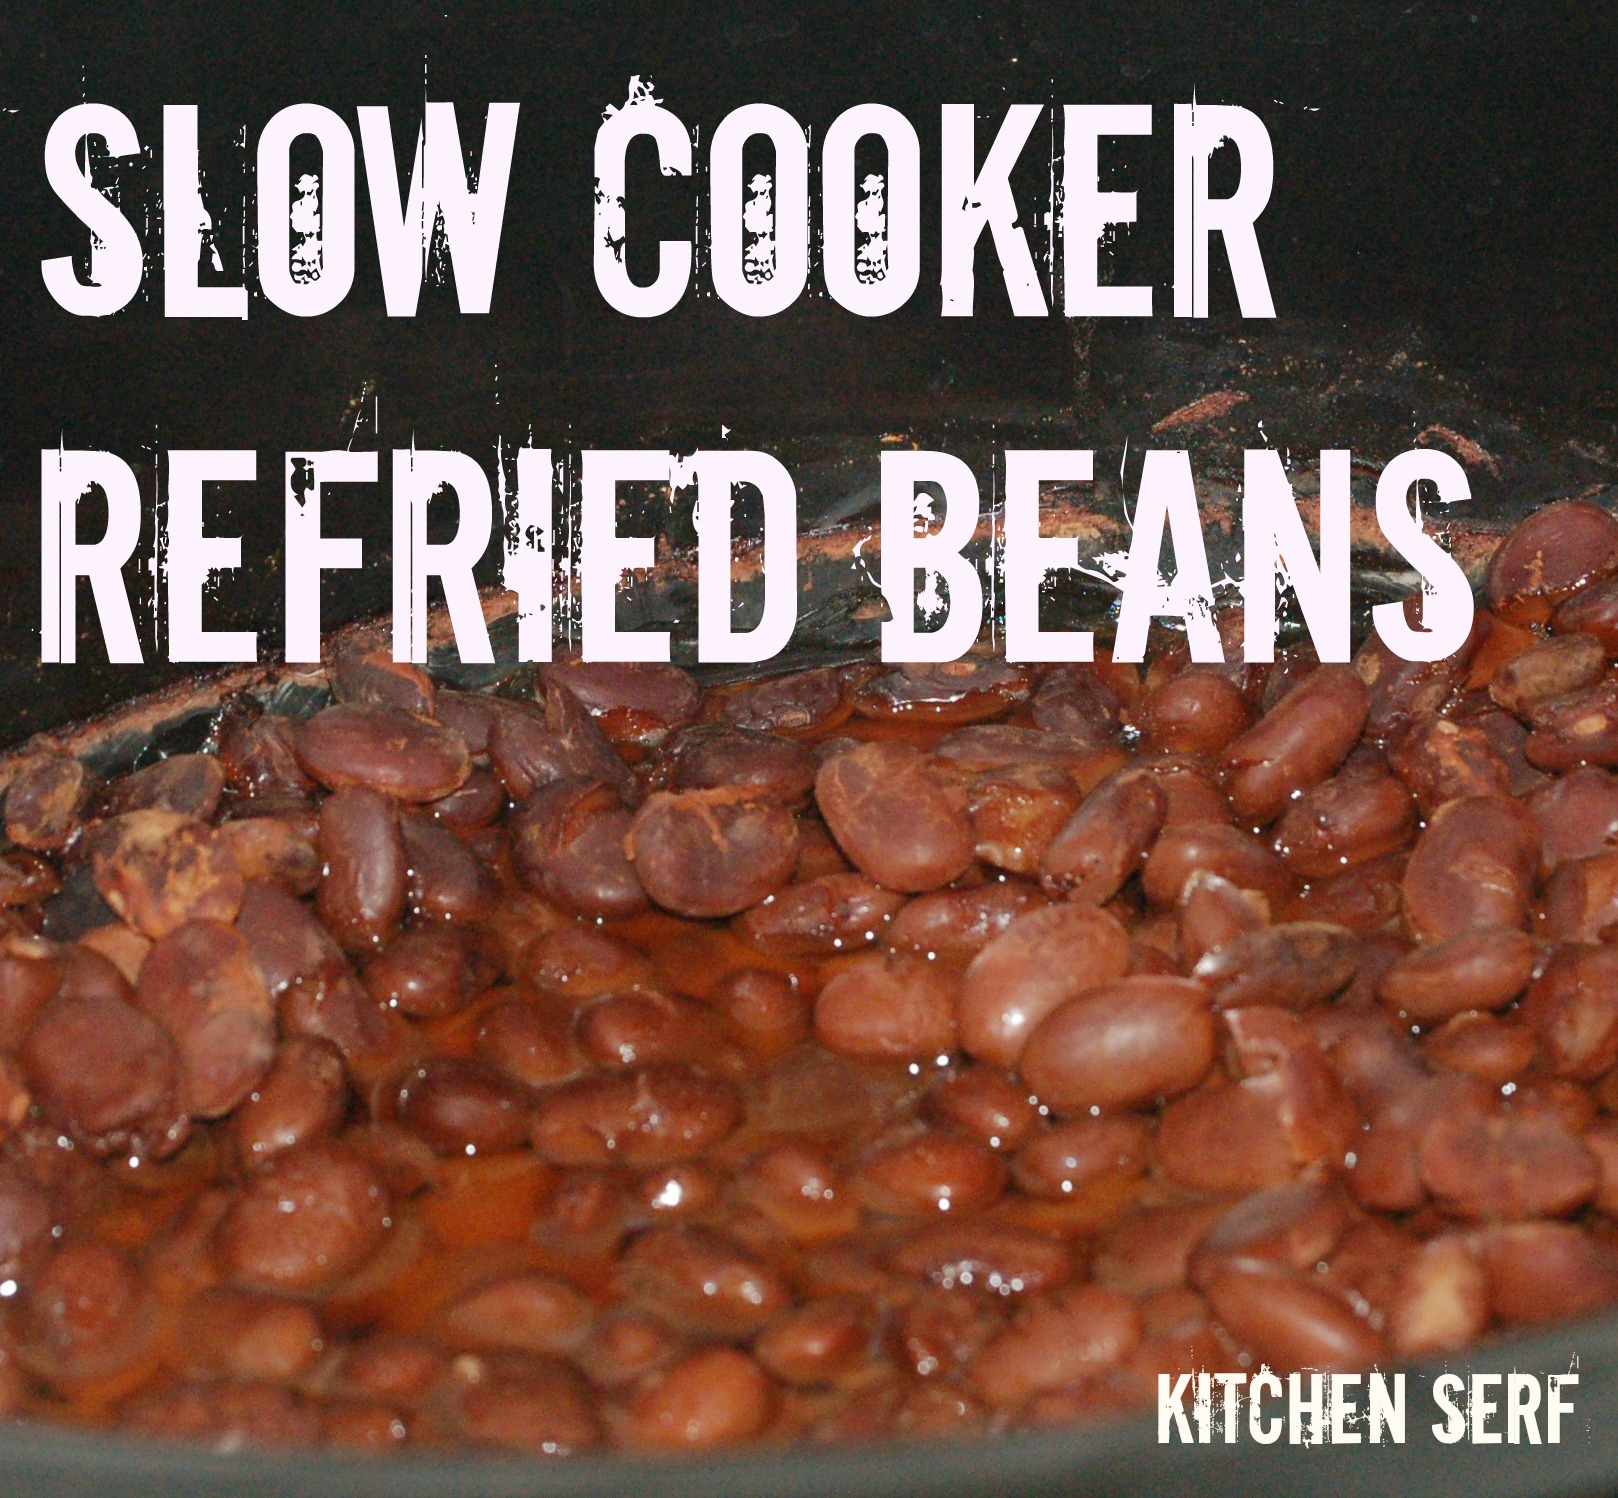 Use a Slow Cooker